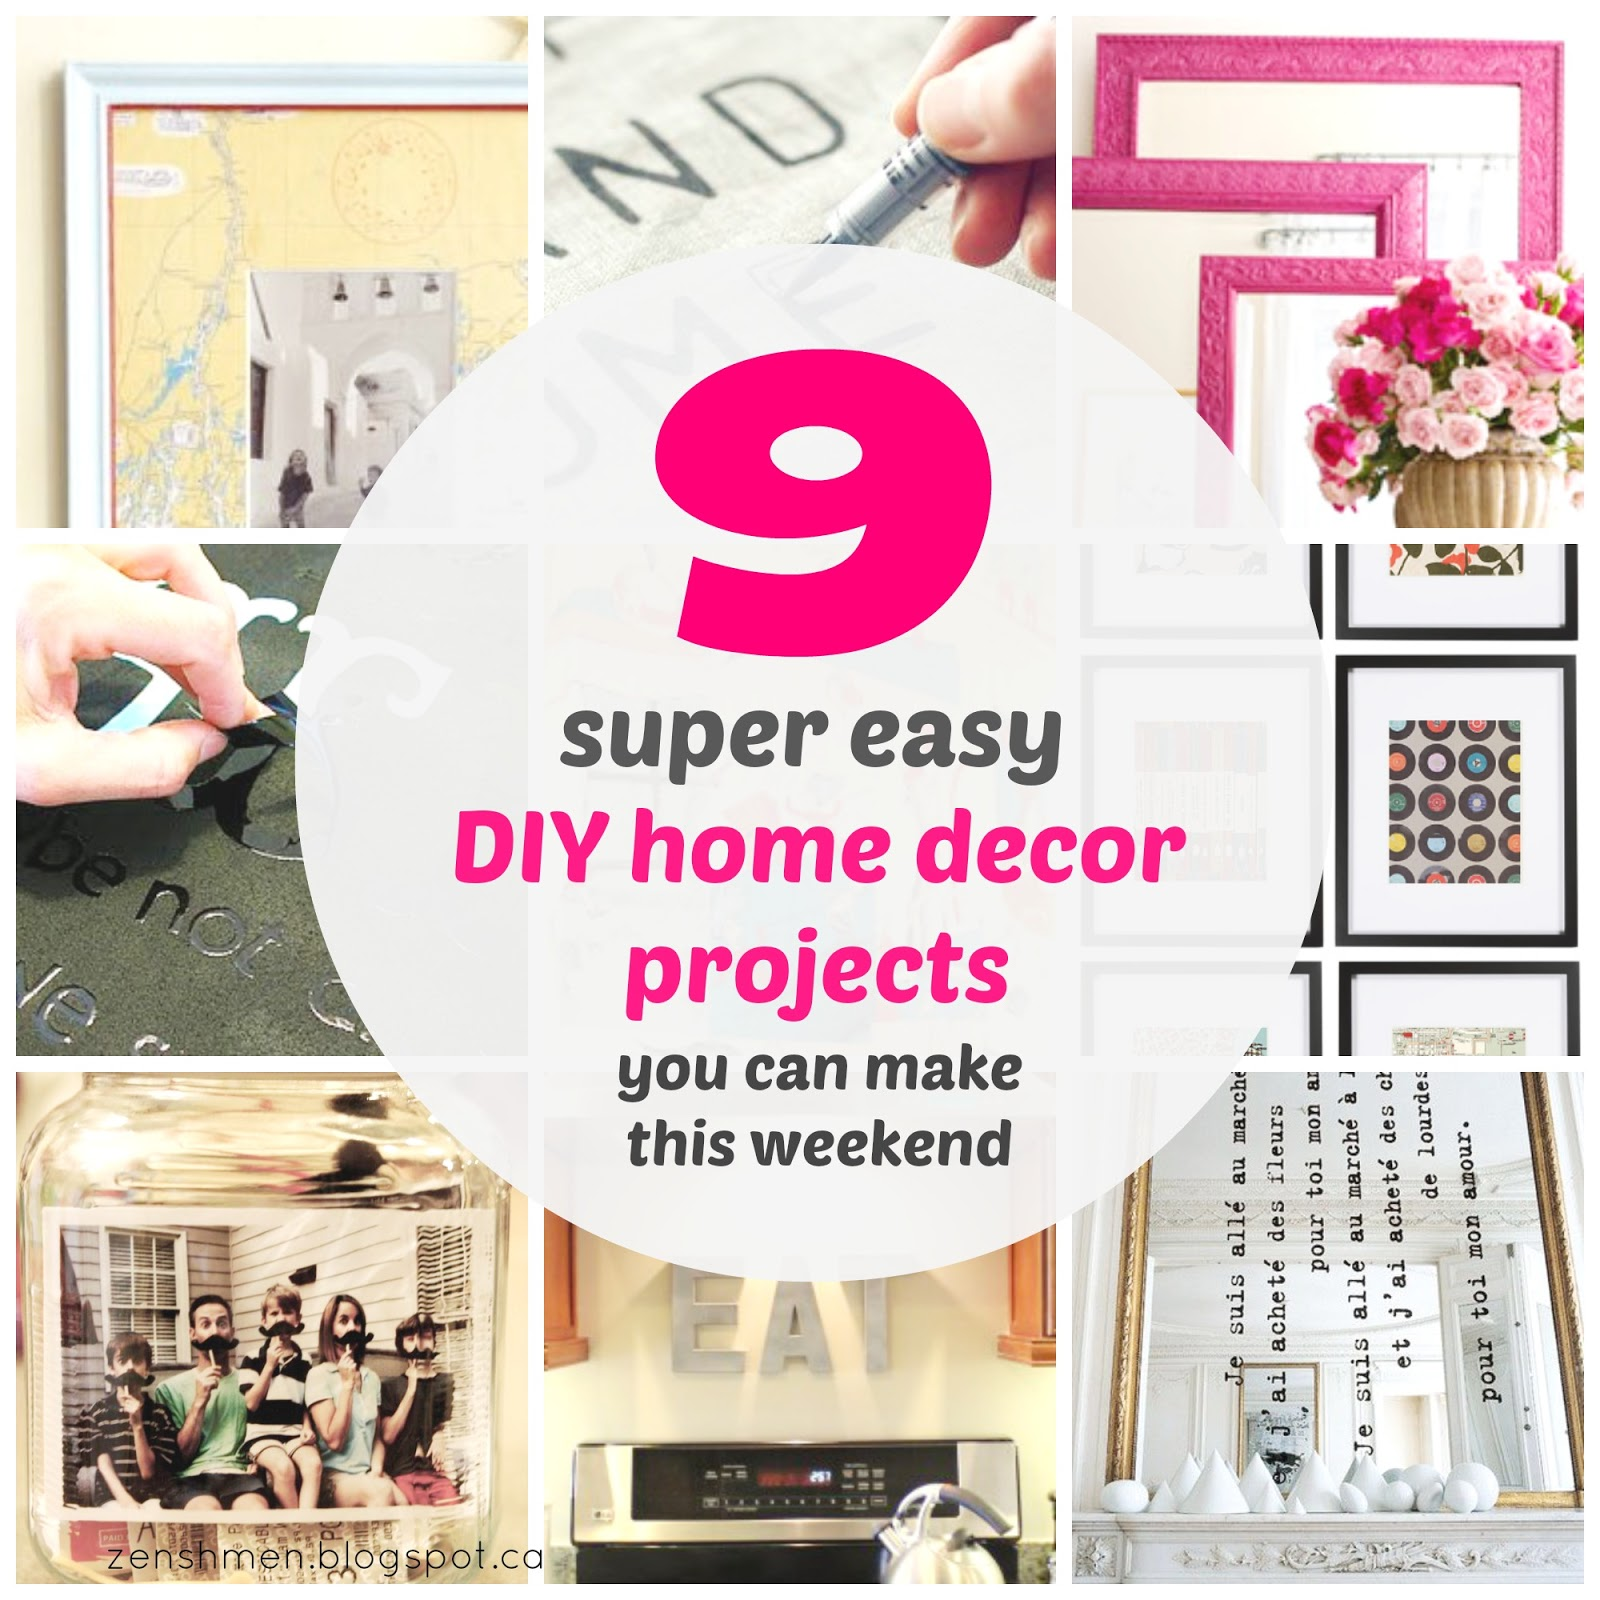 Zen Shmen 9 Super Easy Diy Home Decor Projects You Can